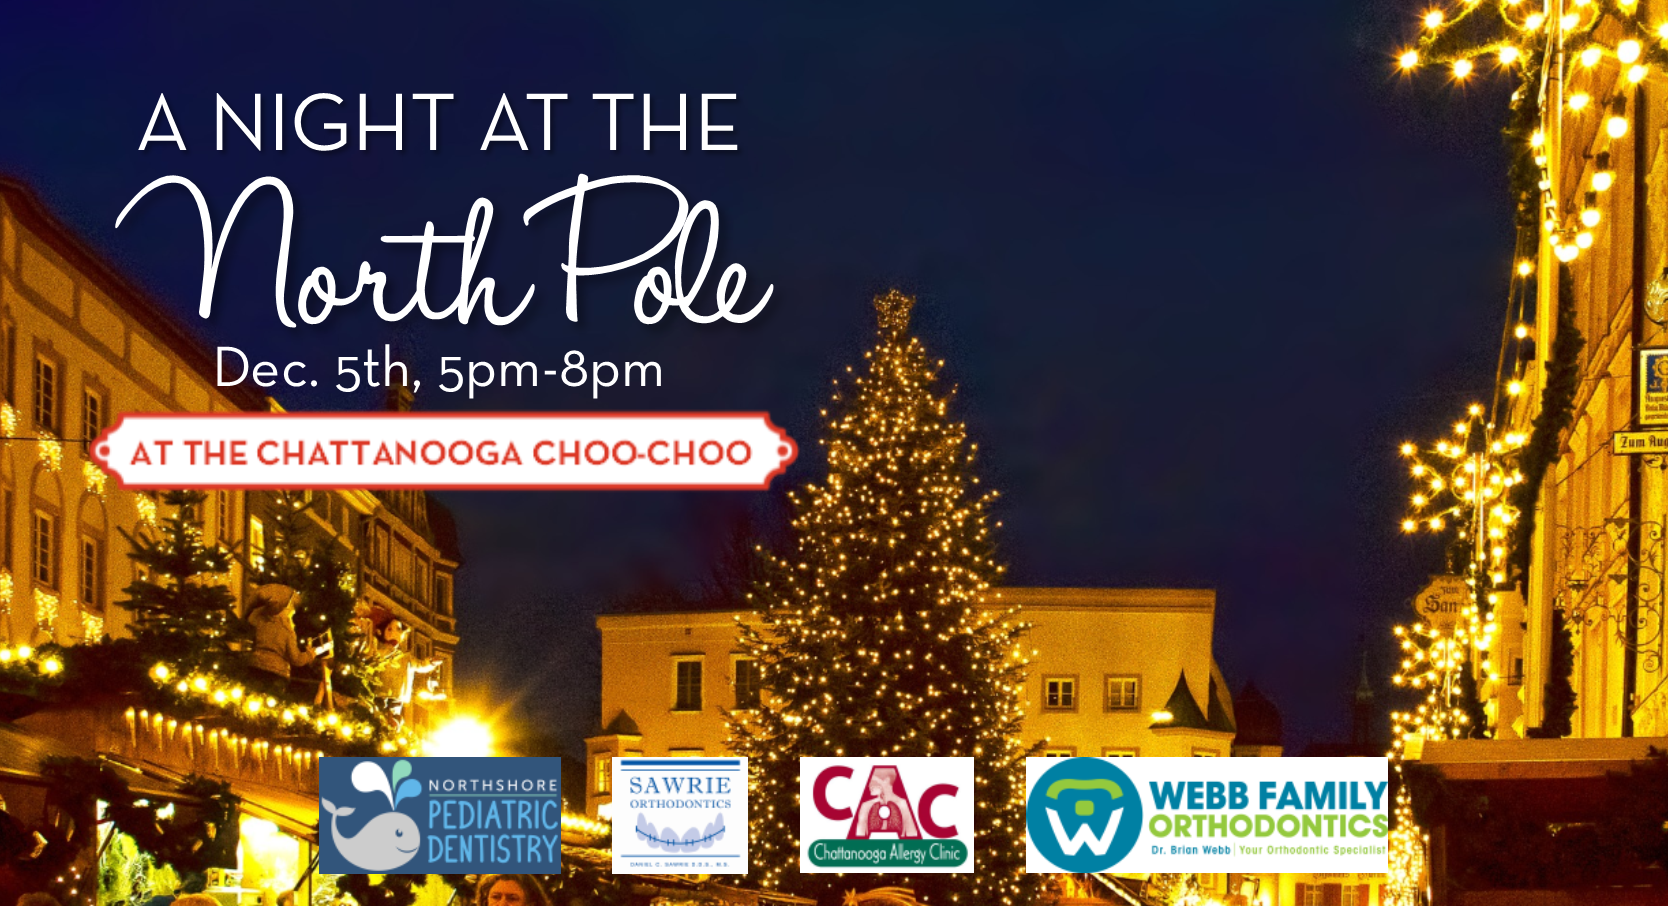 A Night at the North Pole